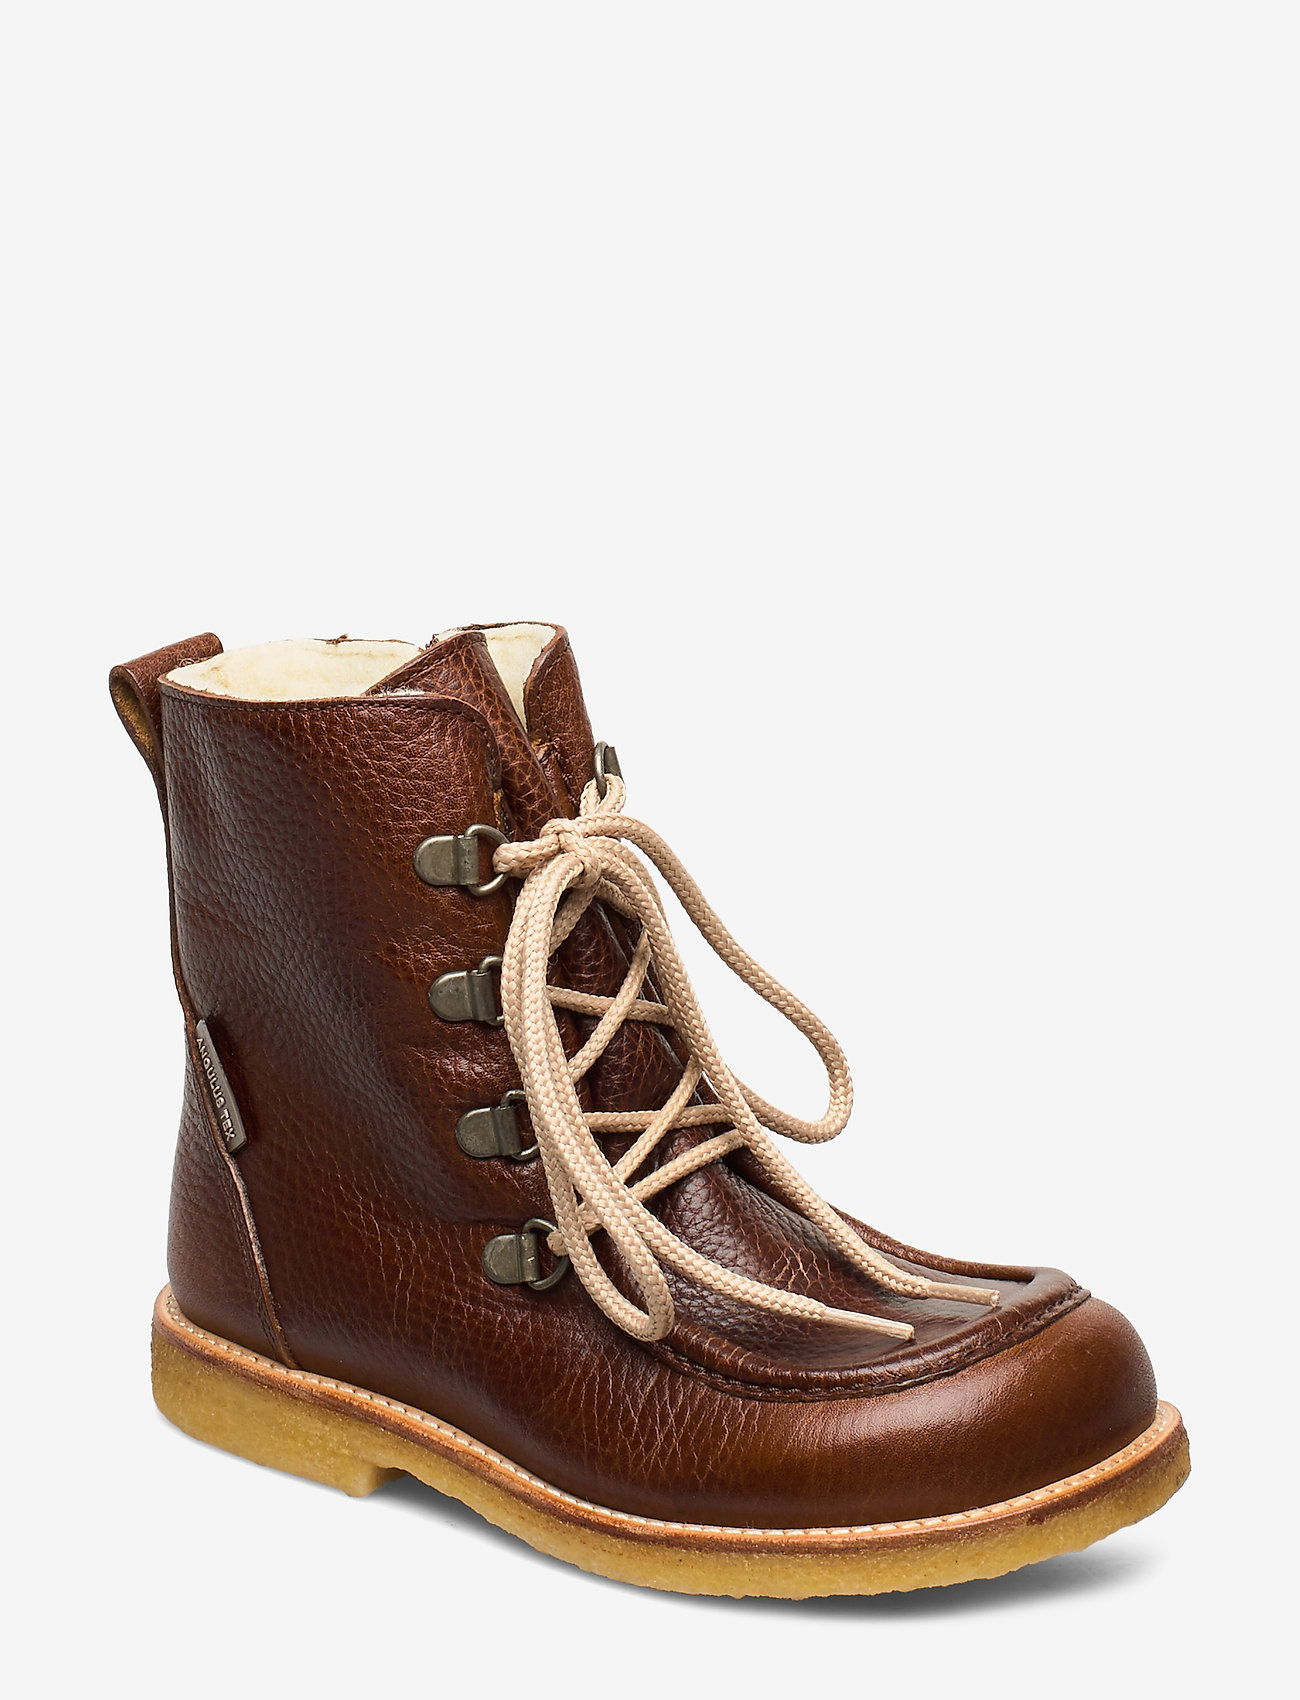 ANGULUS - 2380 - winter boots - 2509/1589 red-brown - 0